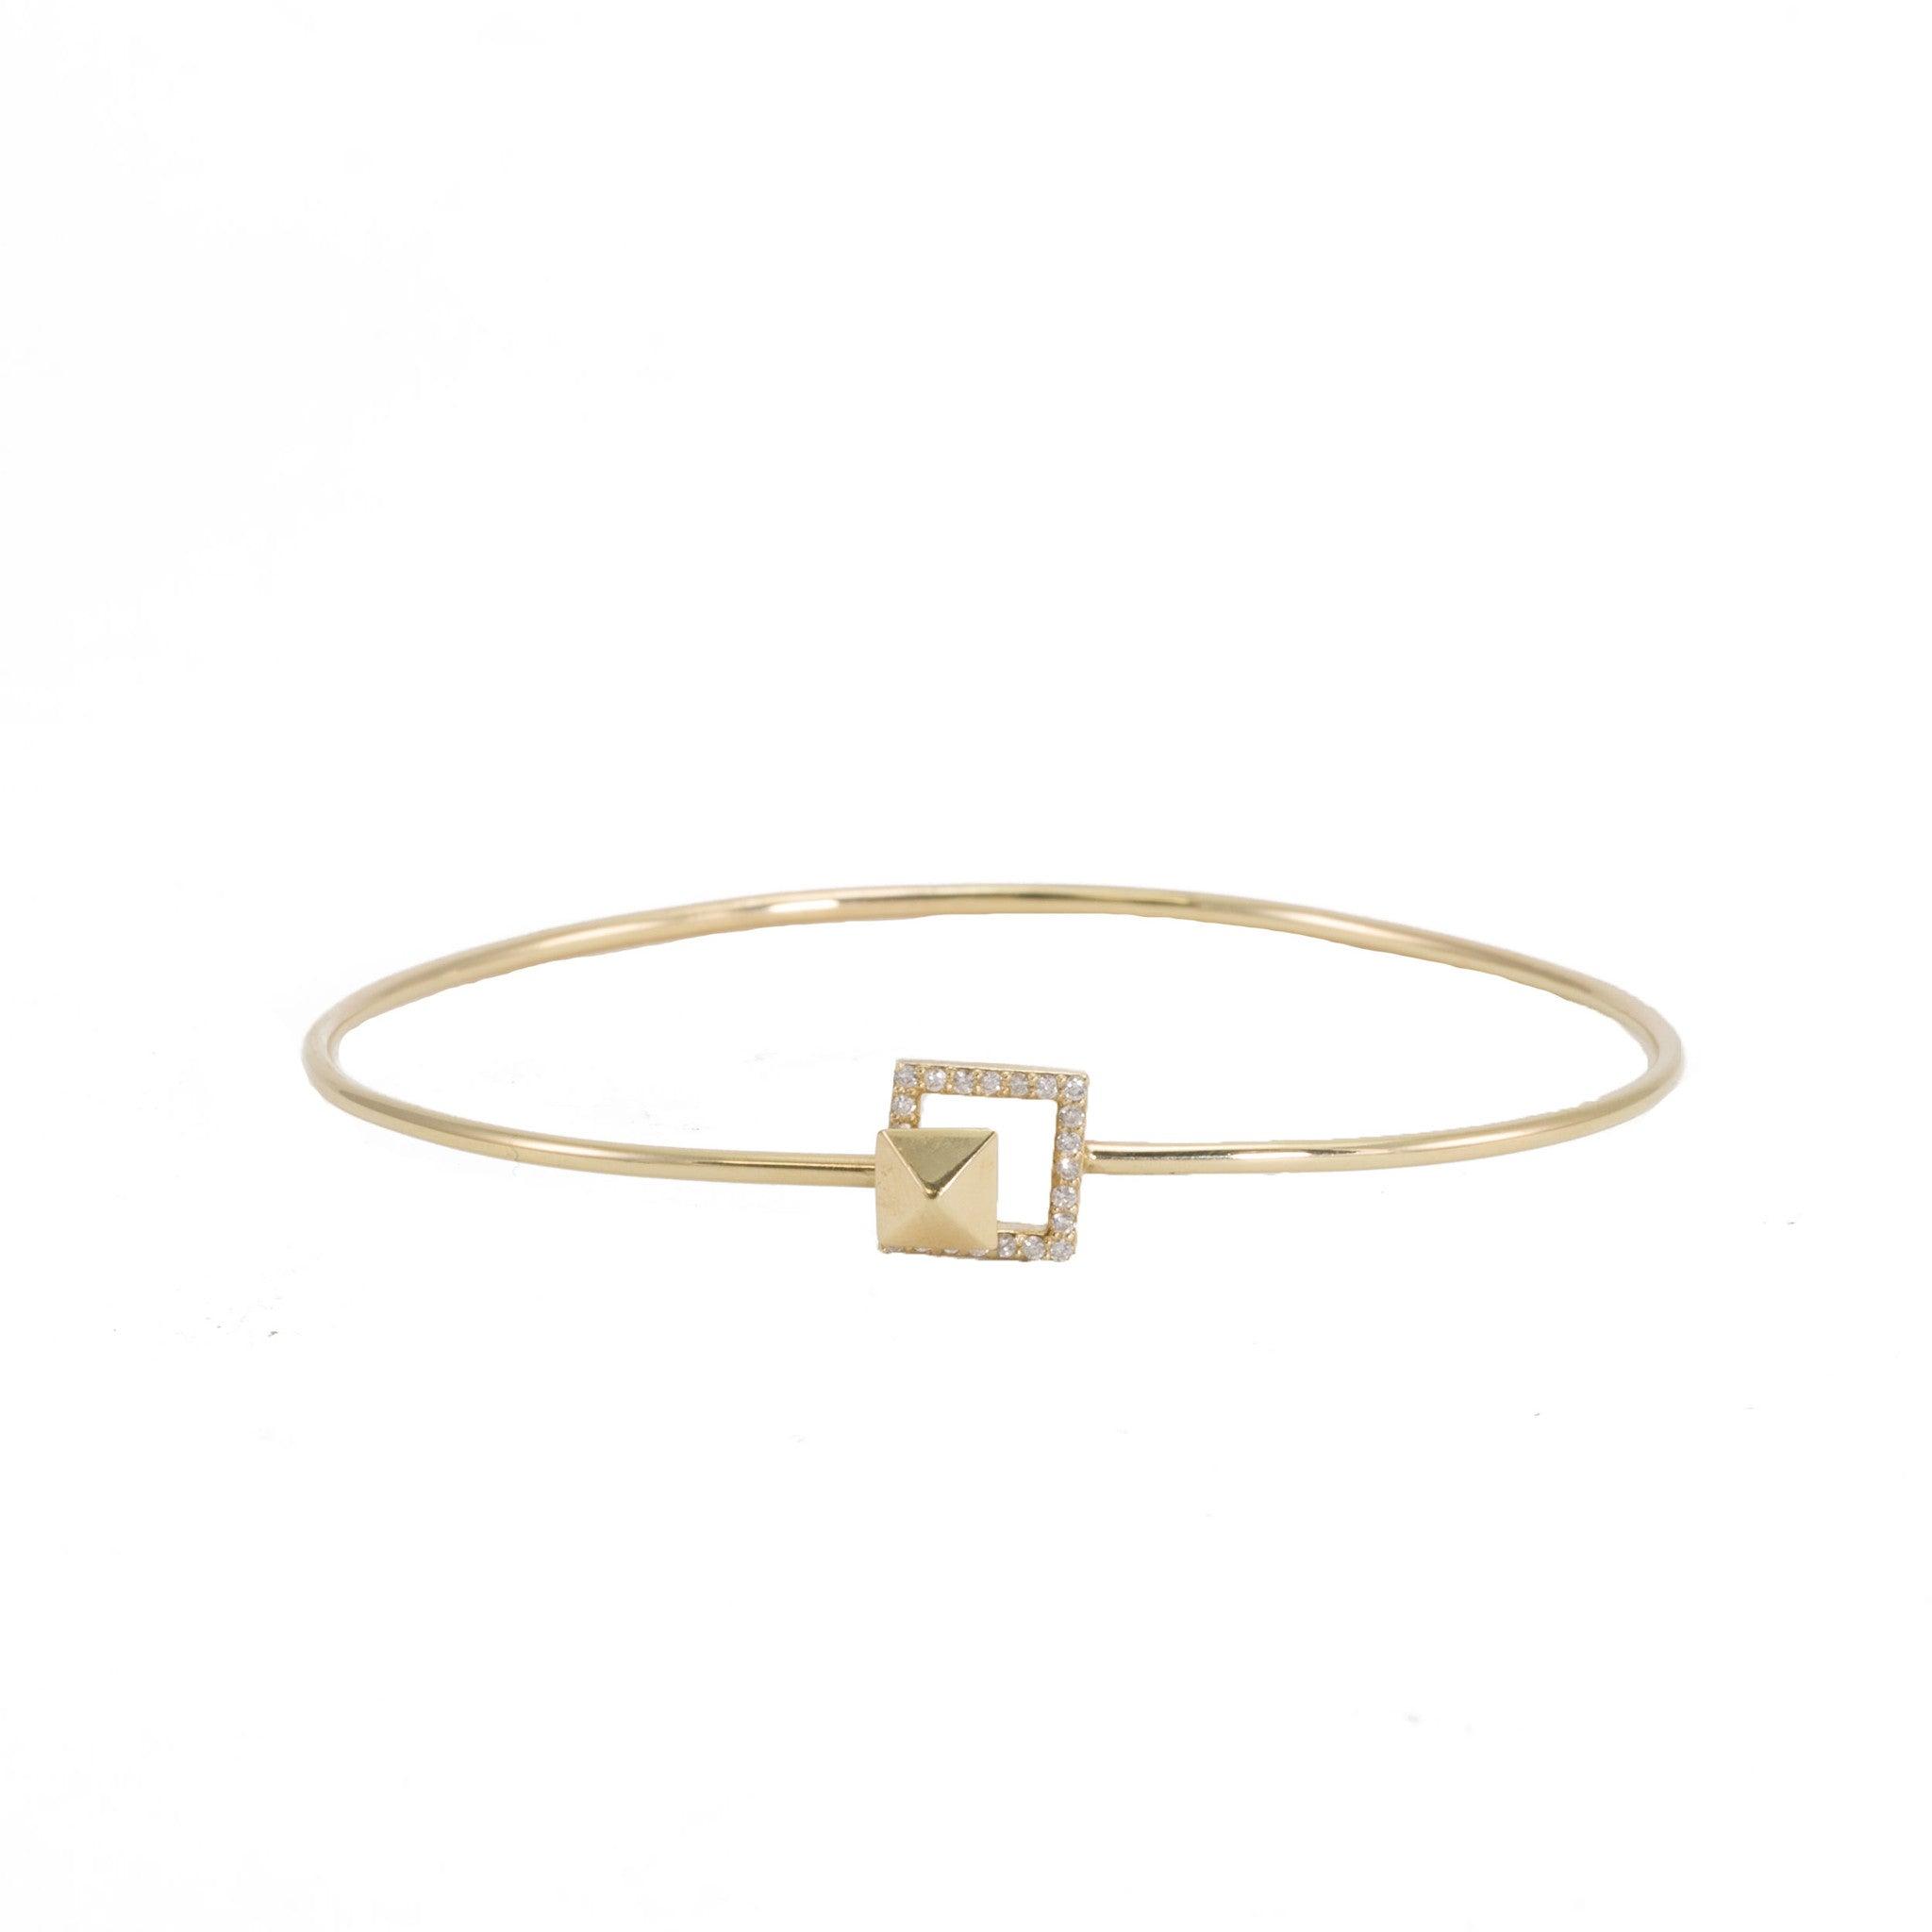 baguette bangle tone bangles gold cuff crystal cut bracelet hinged in bold pin inch fashion rose